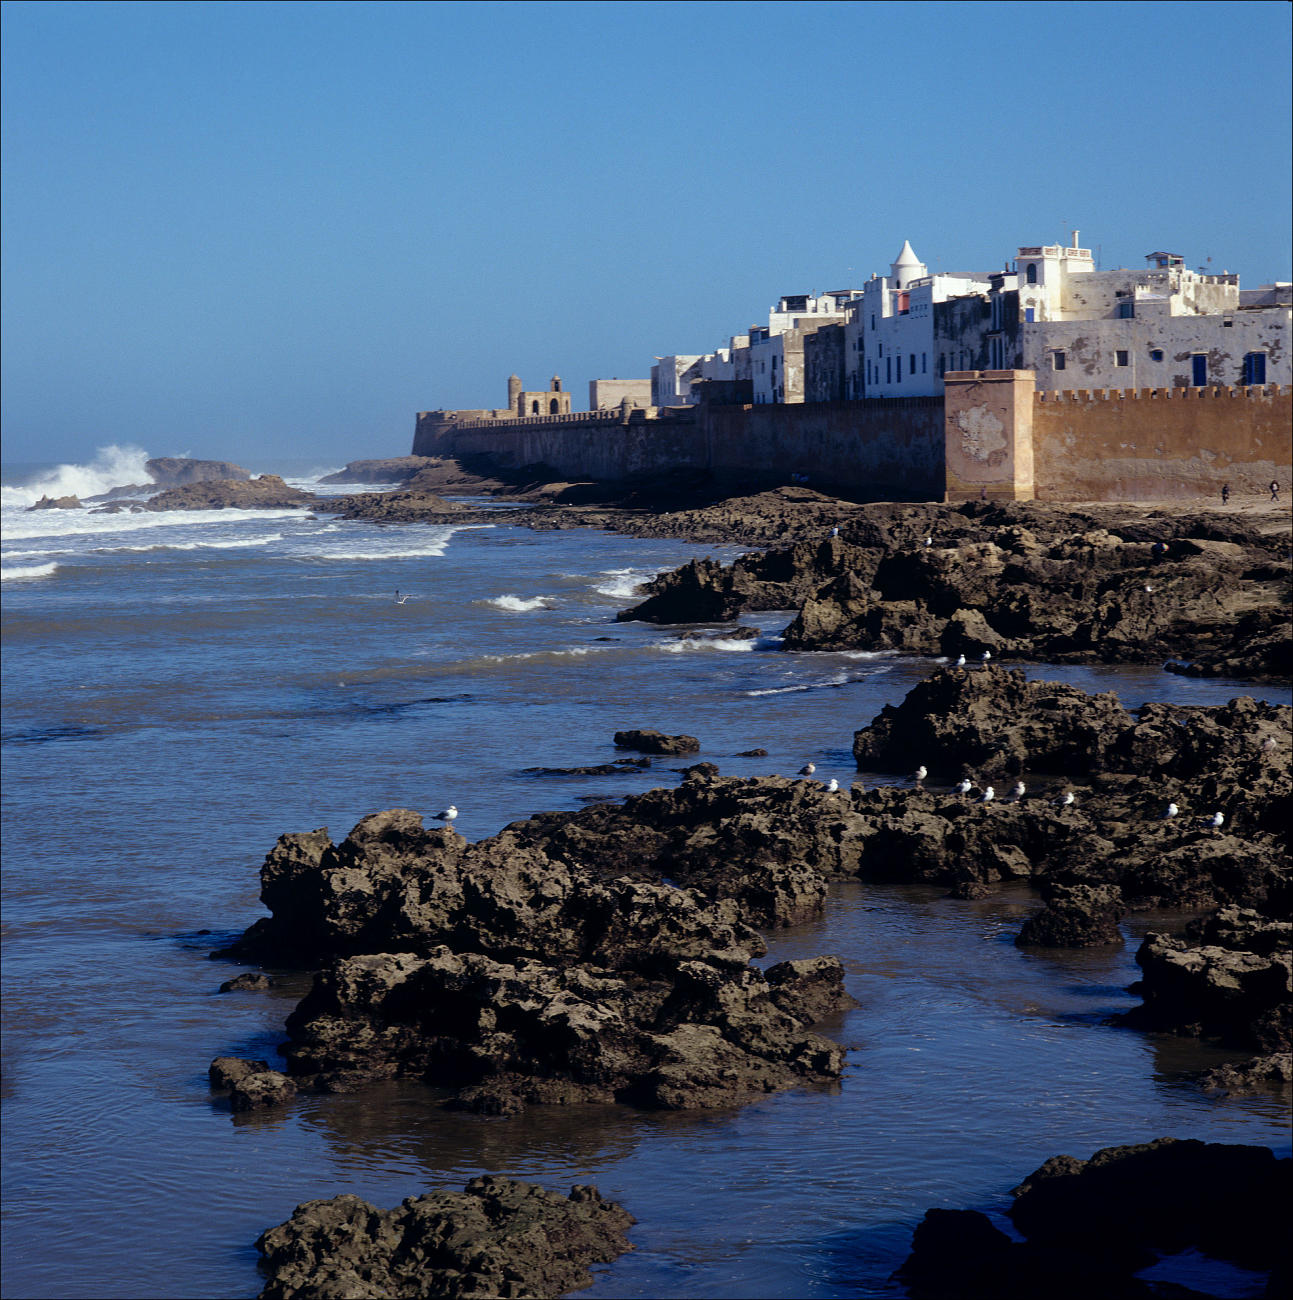 Photo du port et des brisants d'essaouira